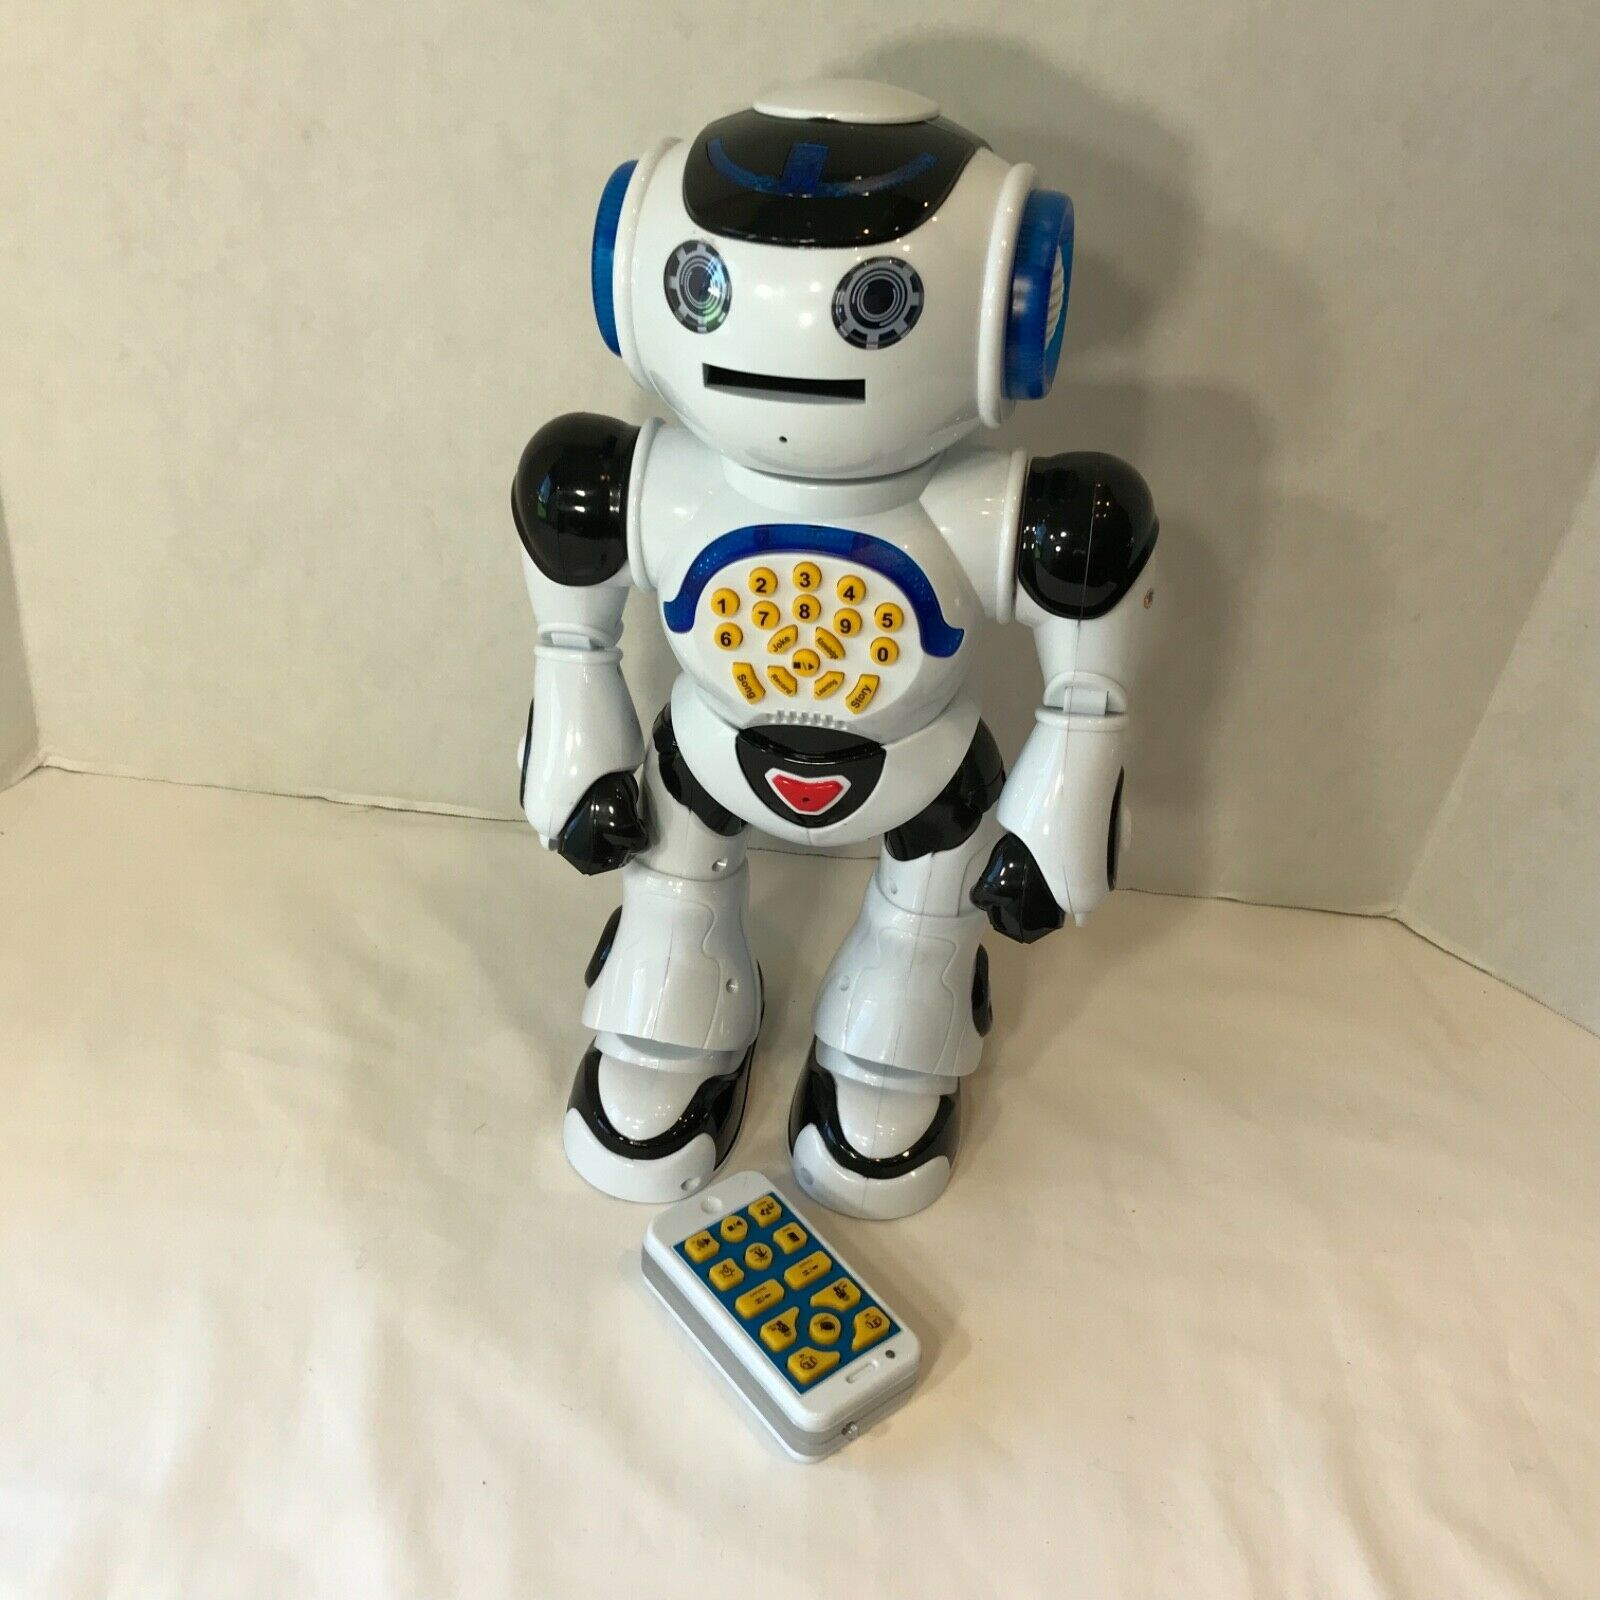 TopRace Smart Robot P 2 Walks,Talks,Jokes,Records,Knoledge,learns Dial 16 Inches Inches Inches 69c09a